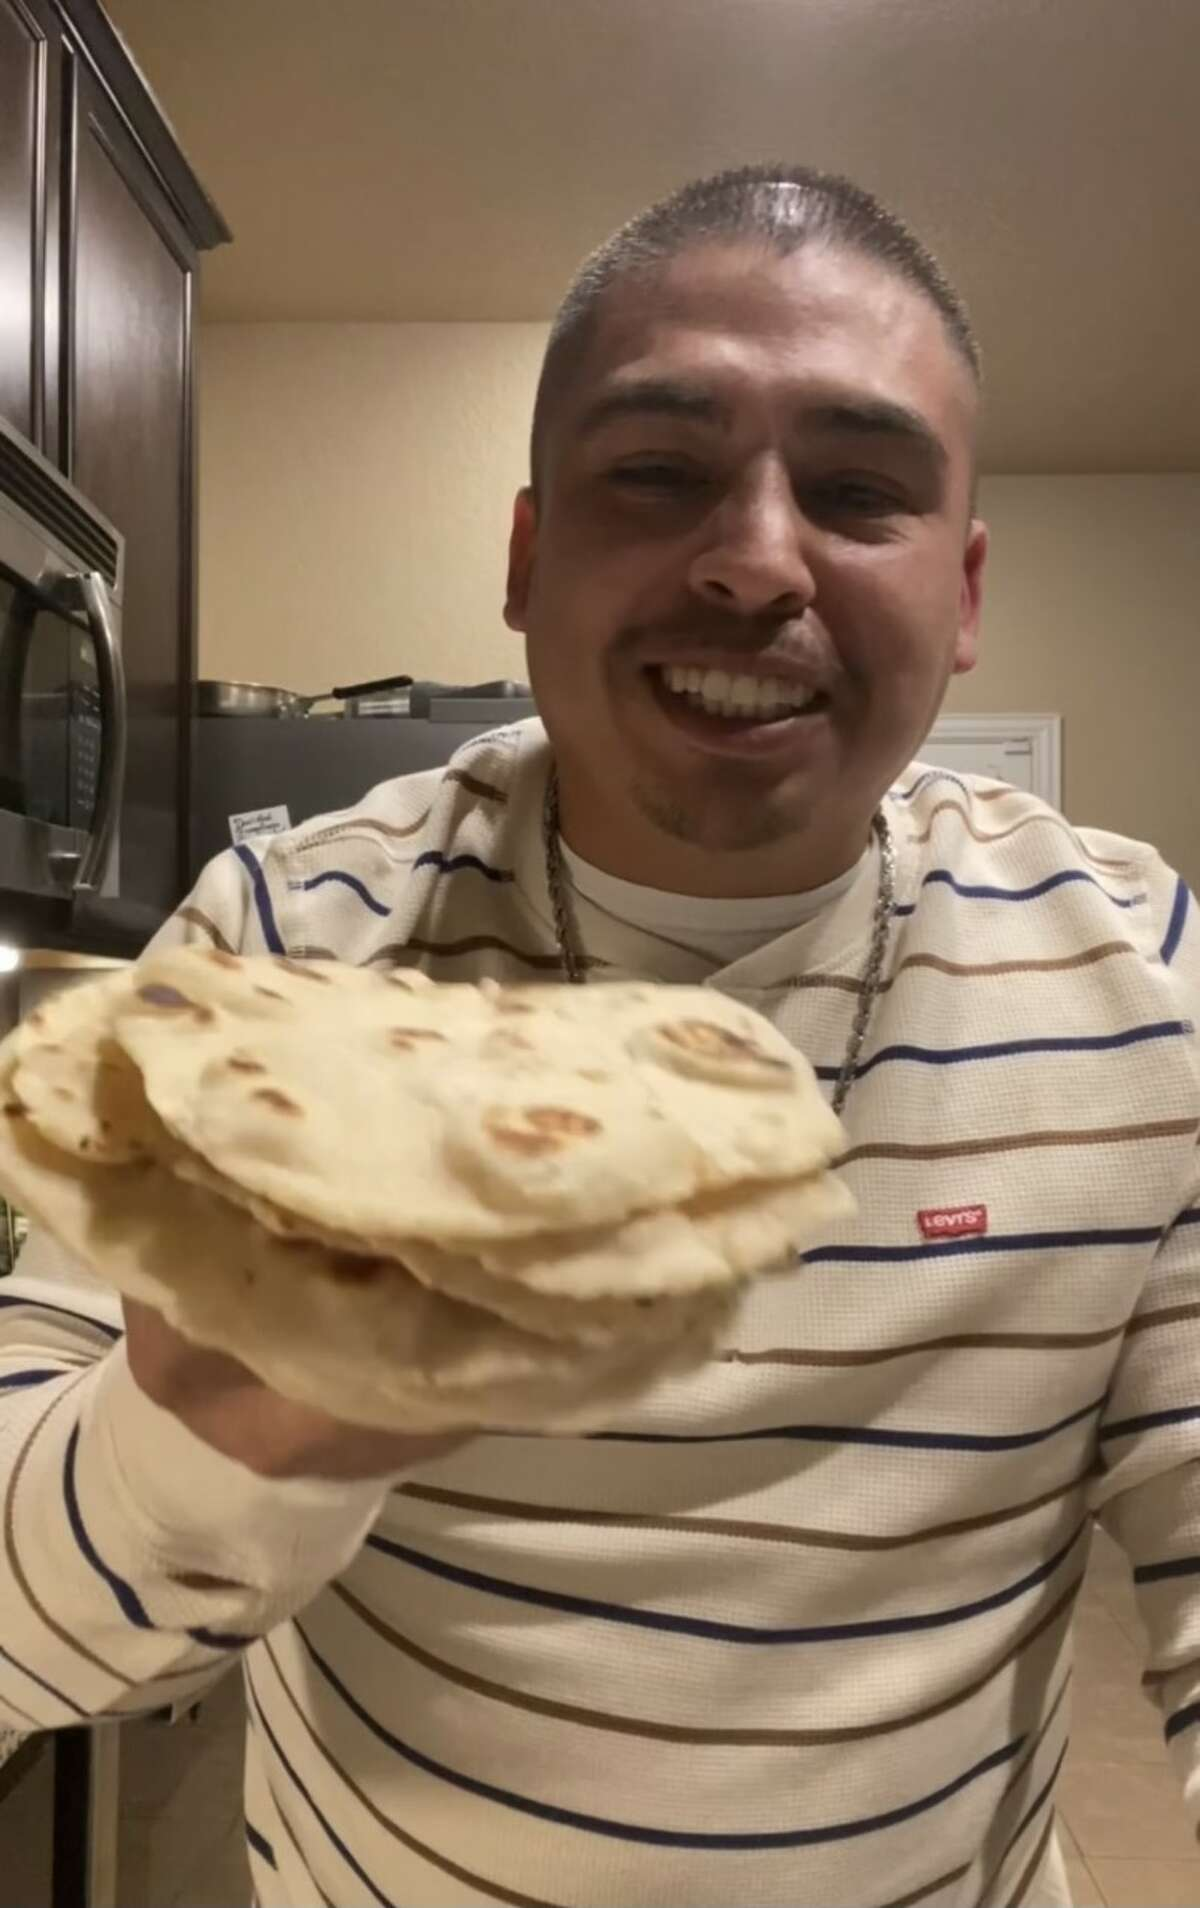 Jerry Yguerabide wasn't sure what charcuterie was when he started his culinary career 10 years ago, now he's signing deals with H-E-B, collaborating with Buzzfeed and working on his own restaurant thanks to legion of more than 600,000 TikTok followers who know him as the expert on everything from chorizo-flavored tortillas to lemon blueberry biscuits.